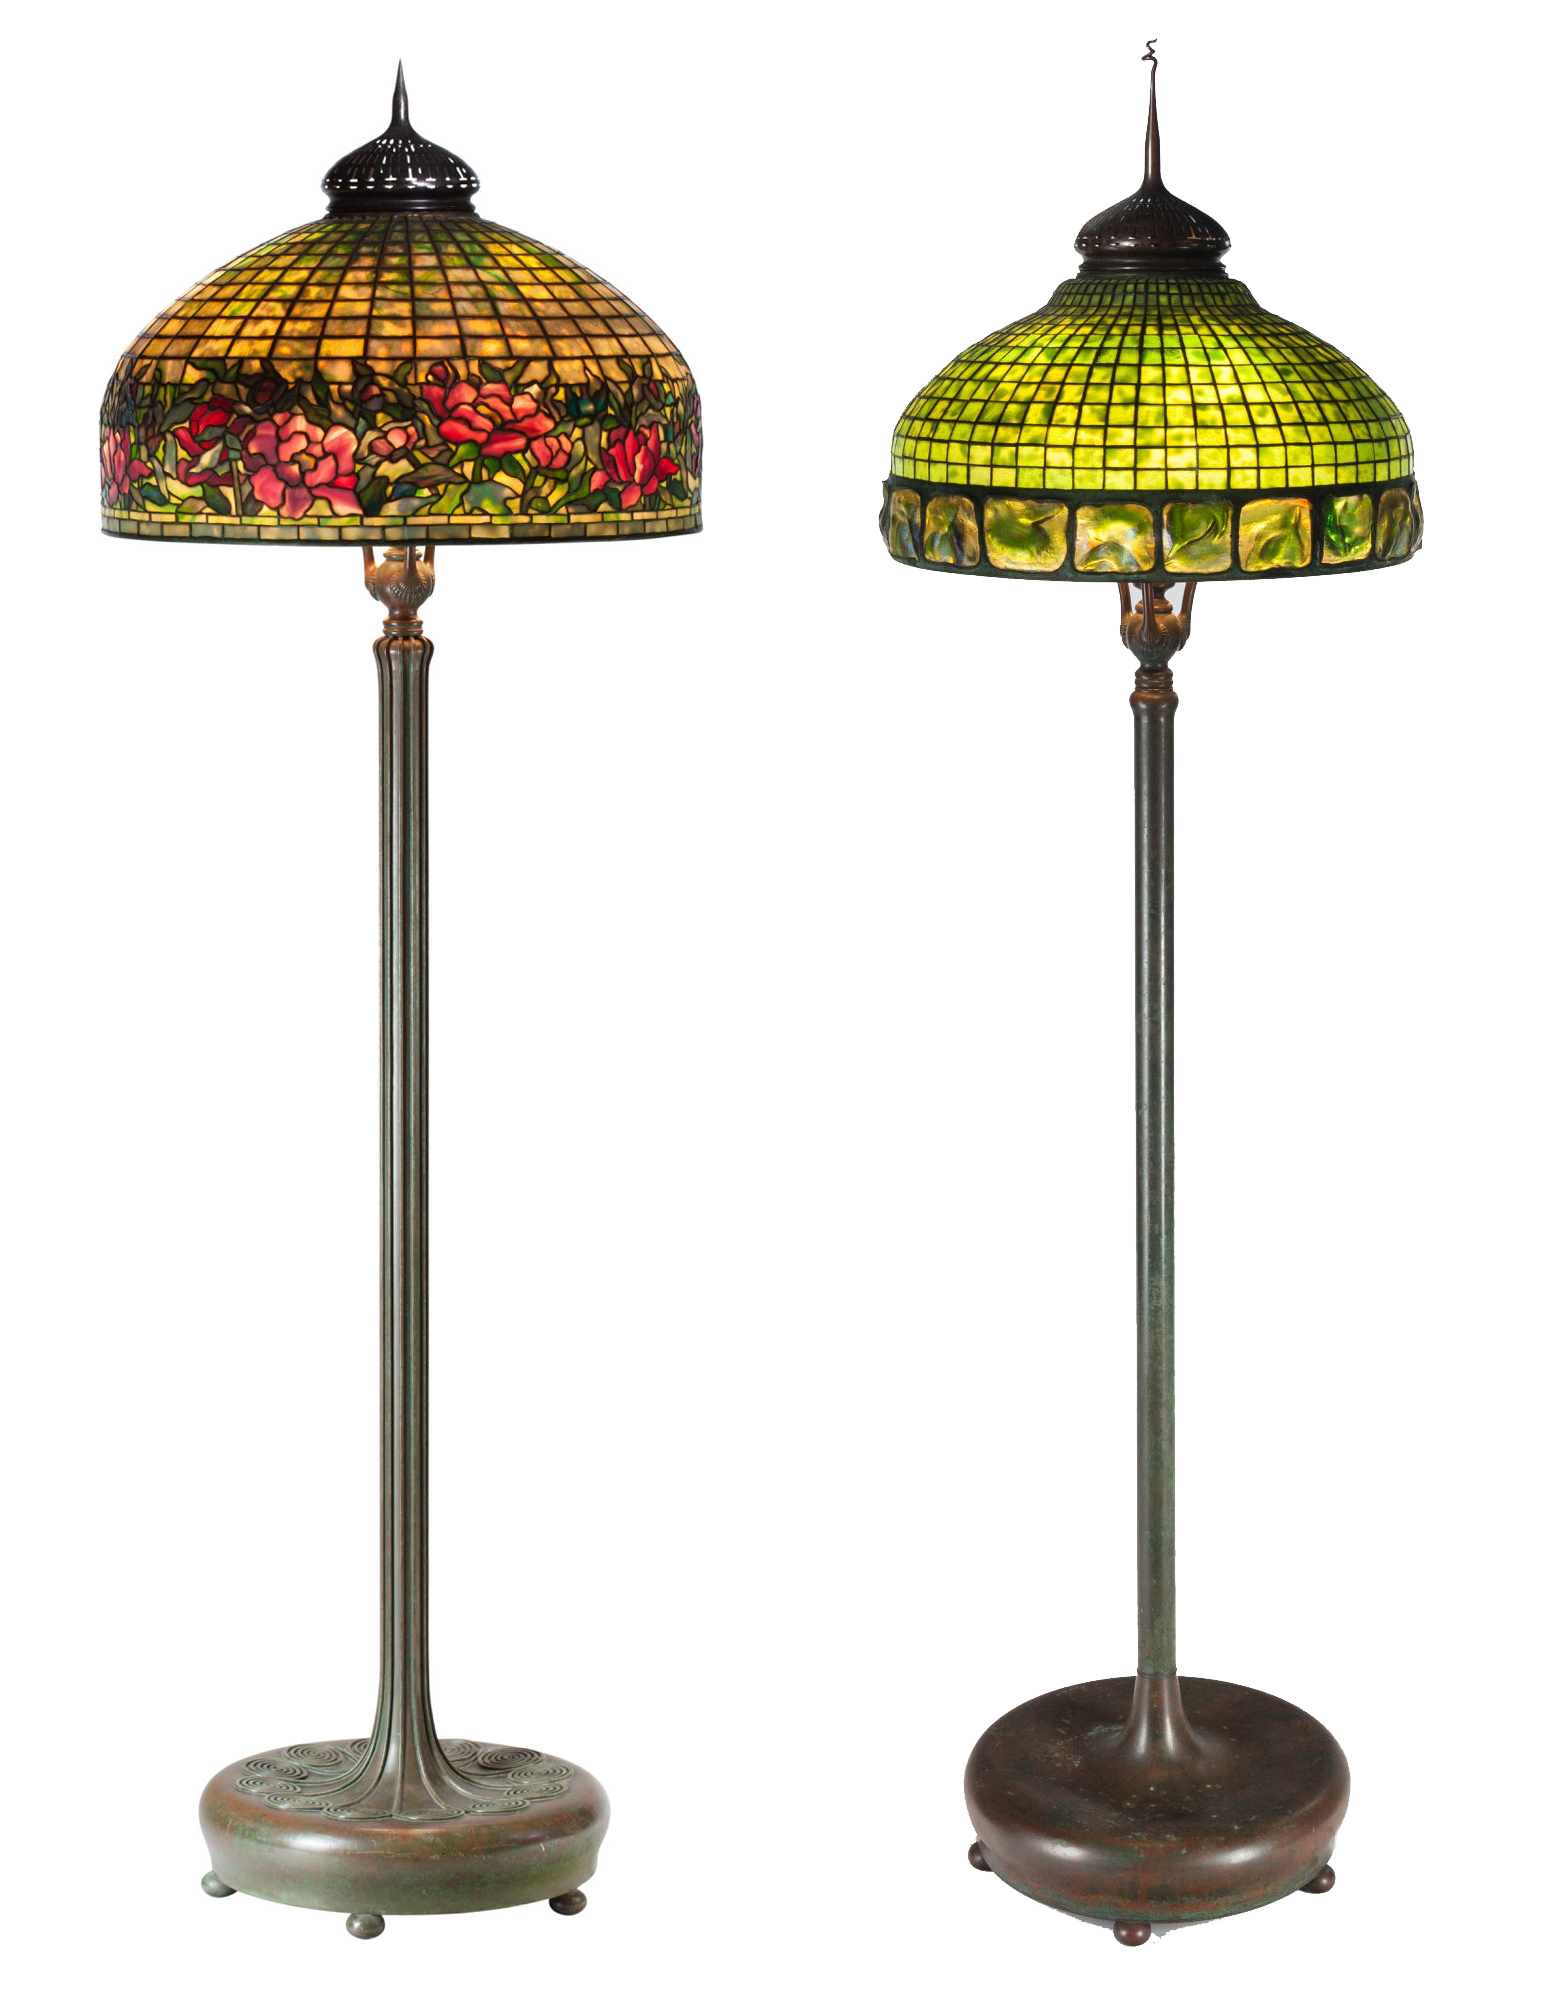 Tiffany lamps light up $2 37M fine & decorative arts sale at Heritage